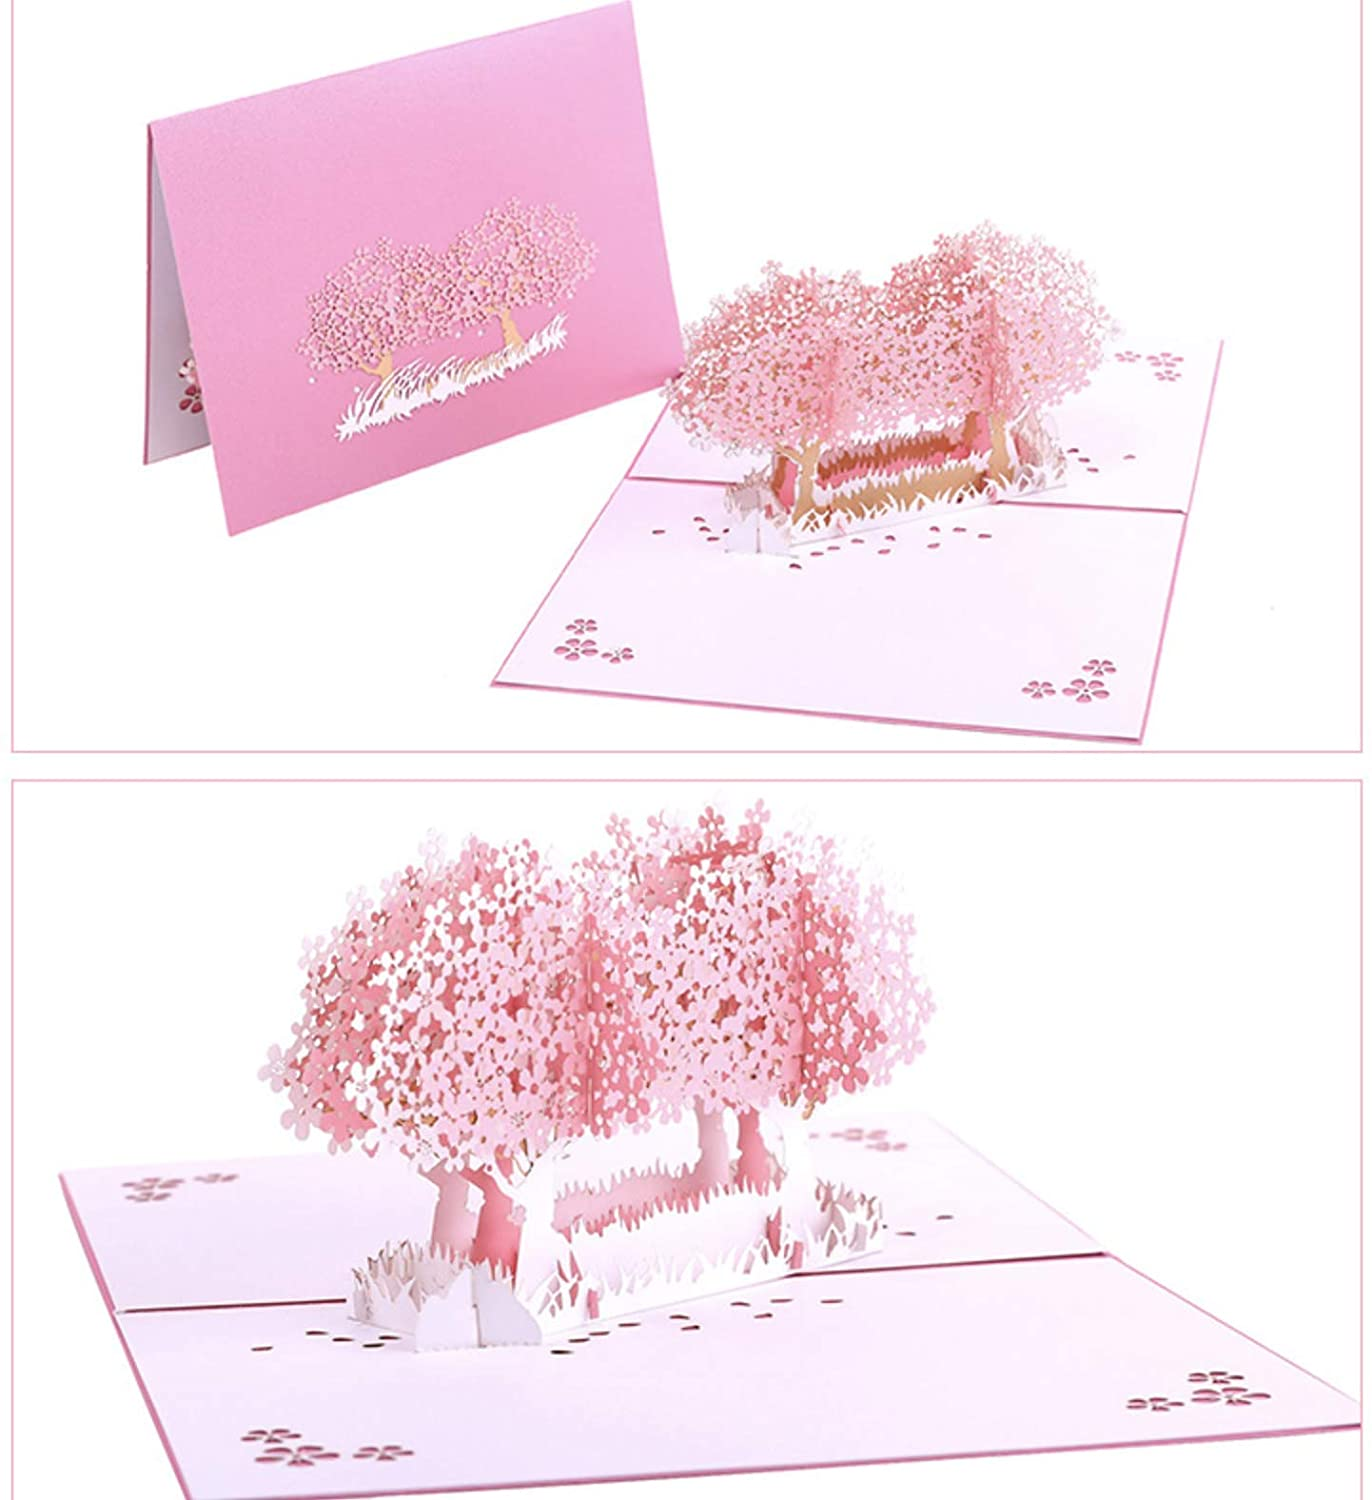 American Greetings Greatest Gift Anniversary Greeting Card with 3D Pop Up Cherry Blossom Card. Envelope included